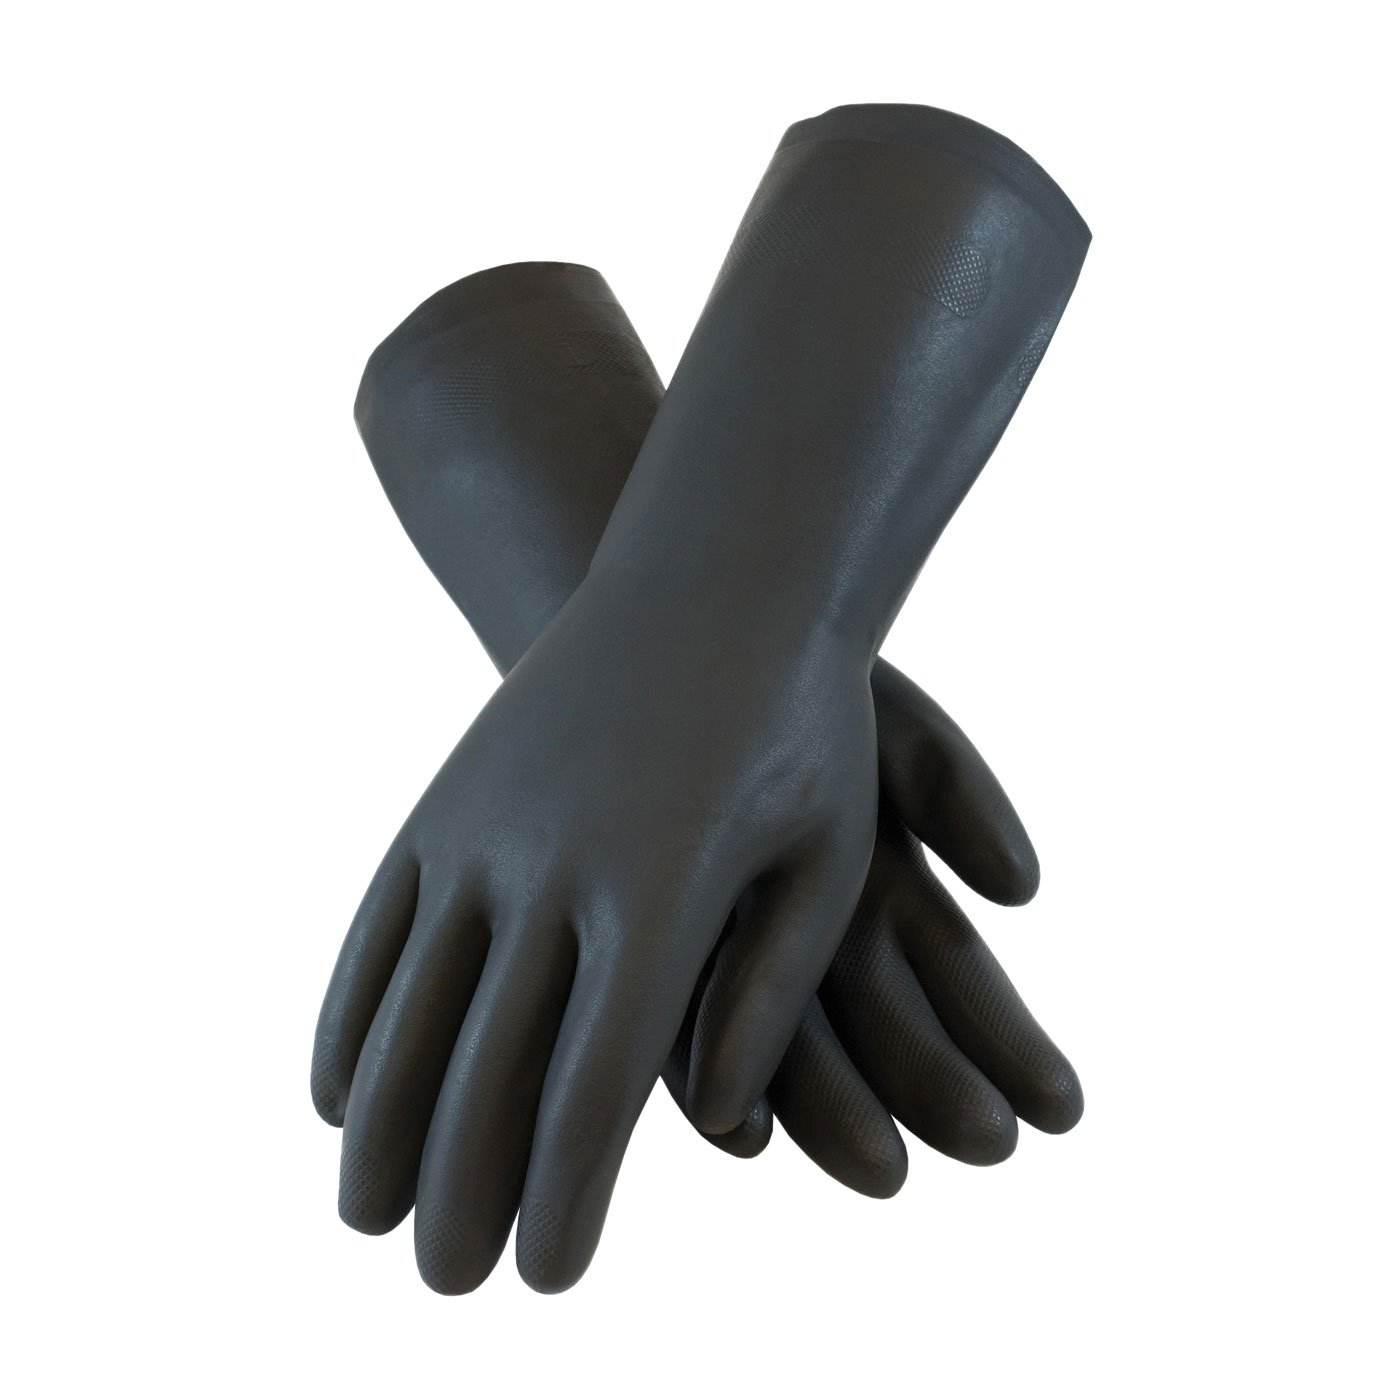 PIP Assurance 28 Mil Flock Lined Neoprene Chemical Gloves with Raised Diamond Grip Size S-XL Small